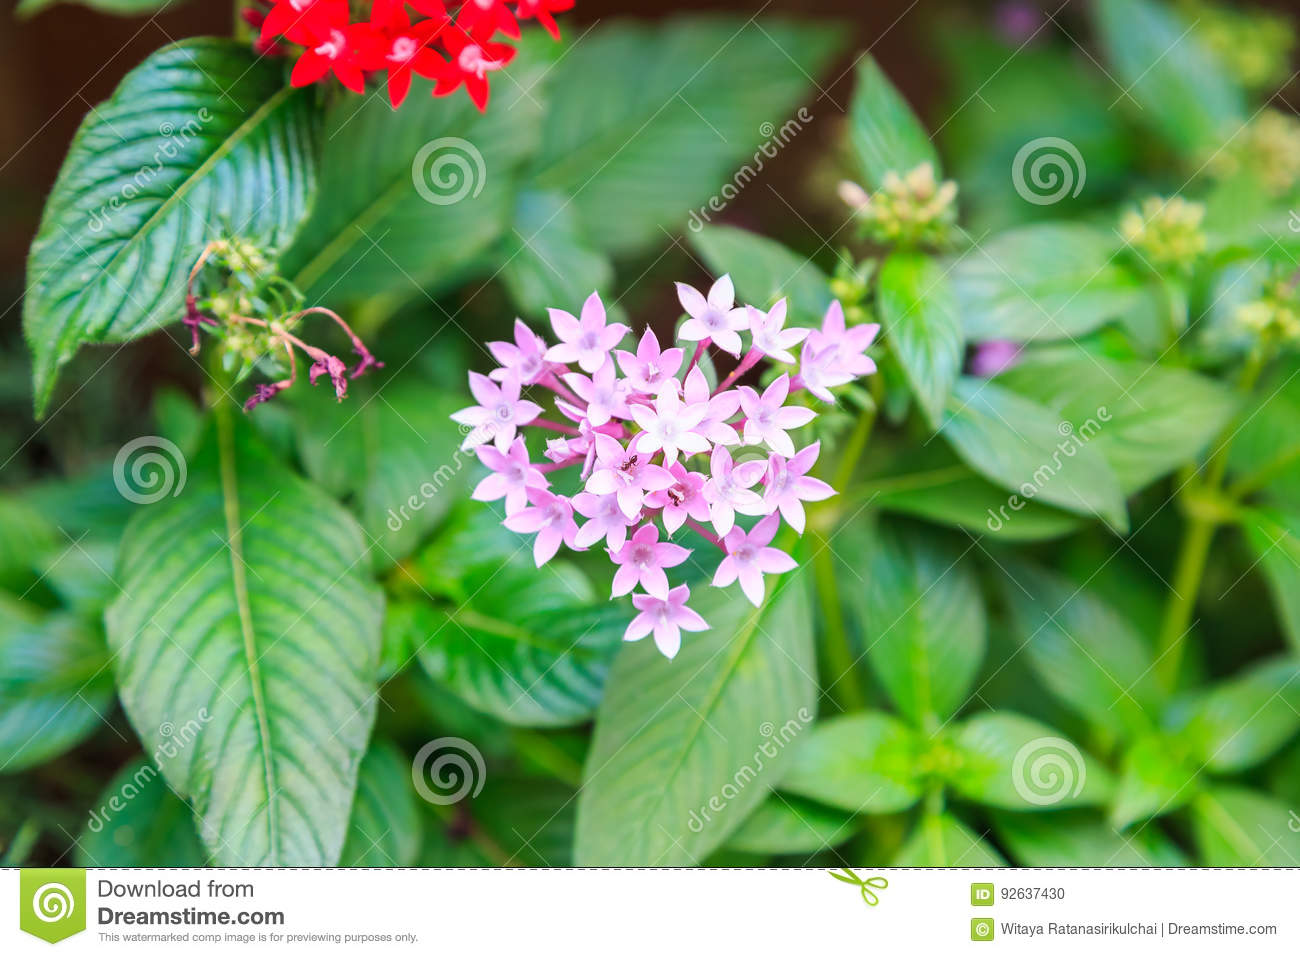 Pentas pink and red little star shaped flower stock photo image download comp mightylinksfo